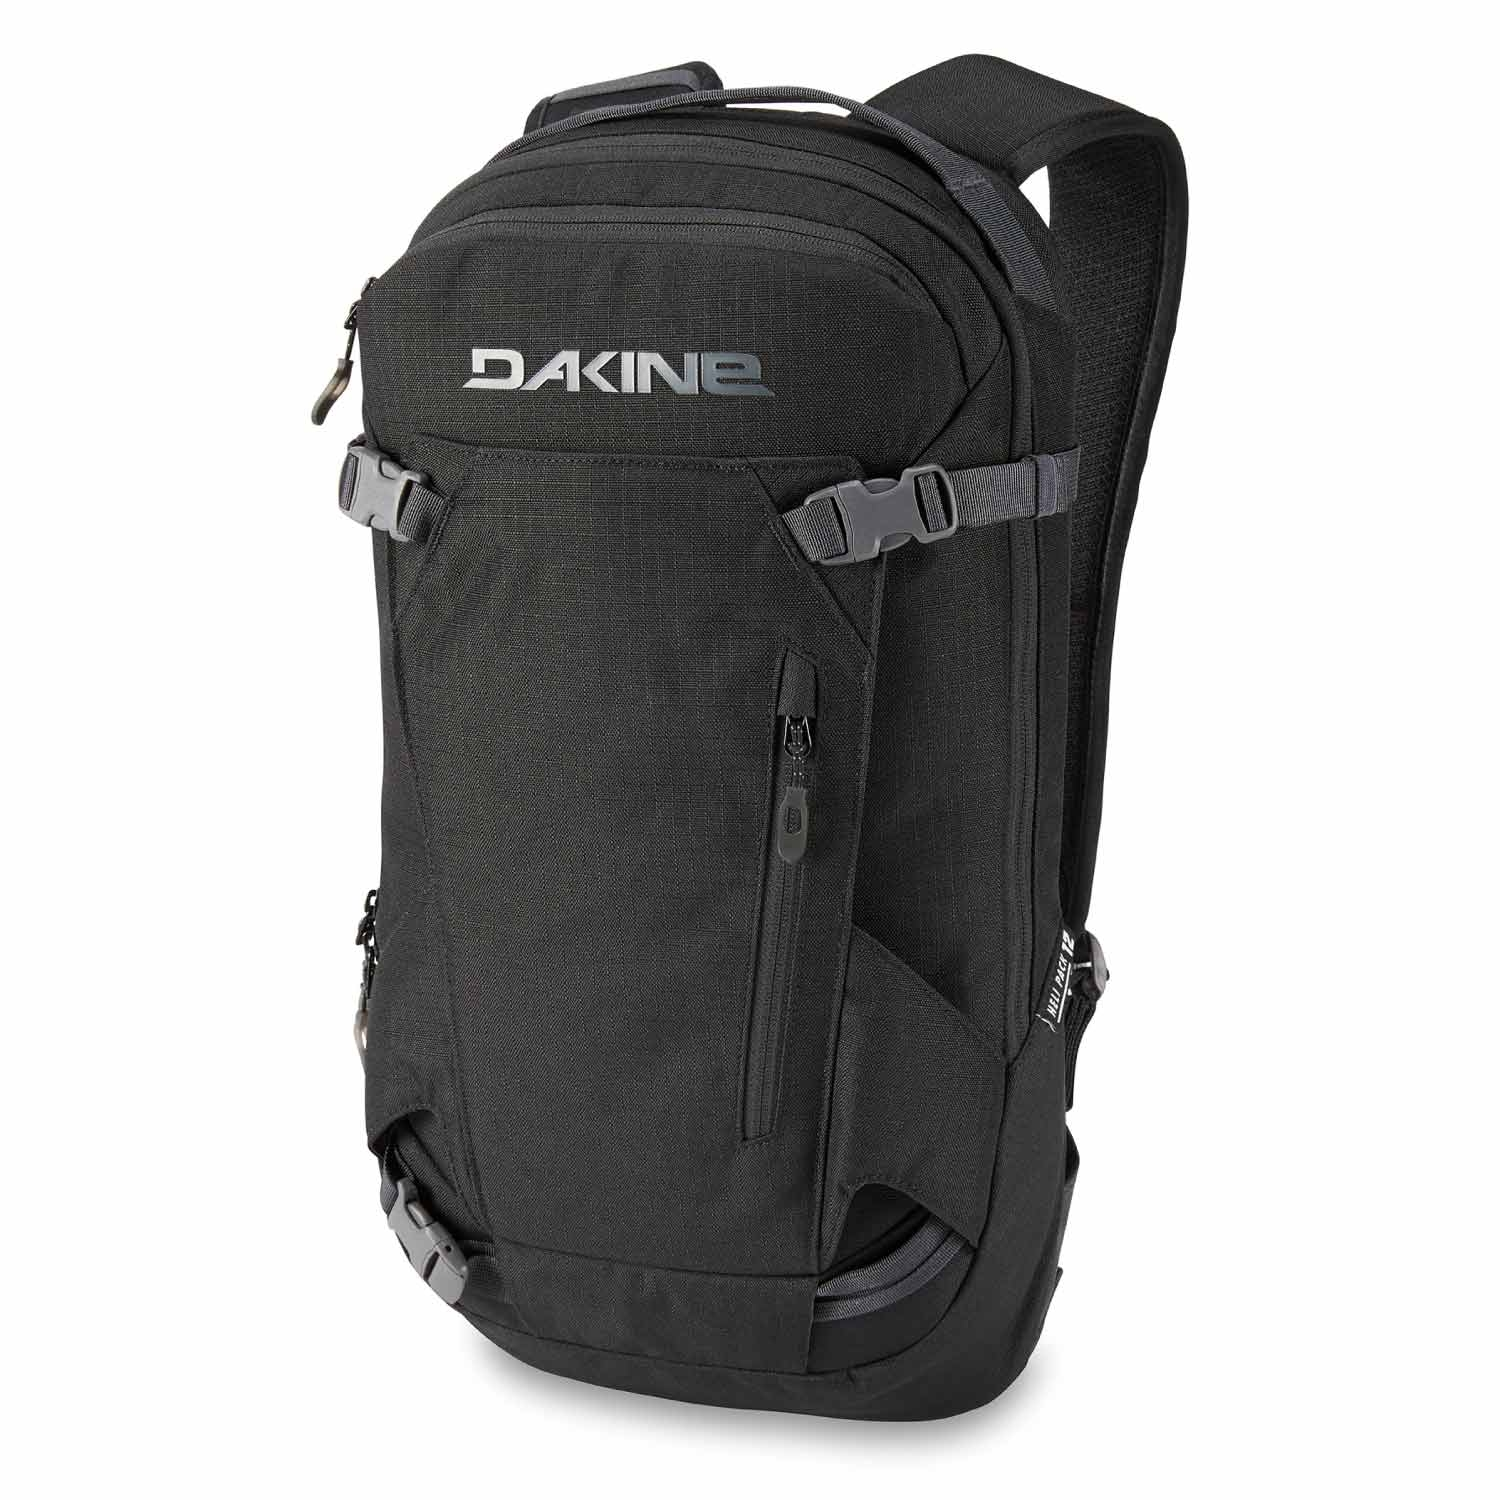 Dakine Heli Pack 12L Black 2021